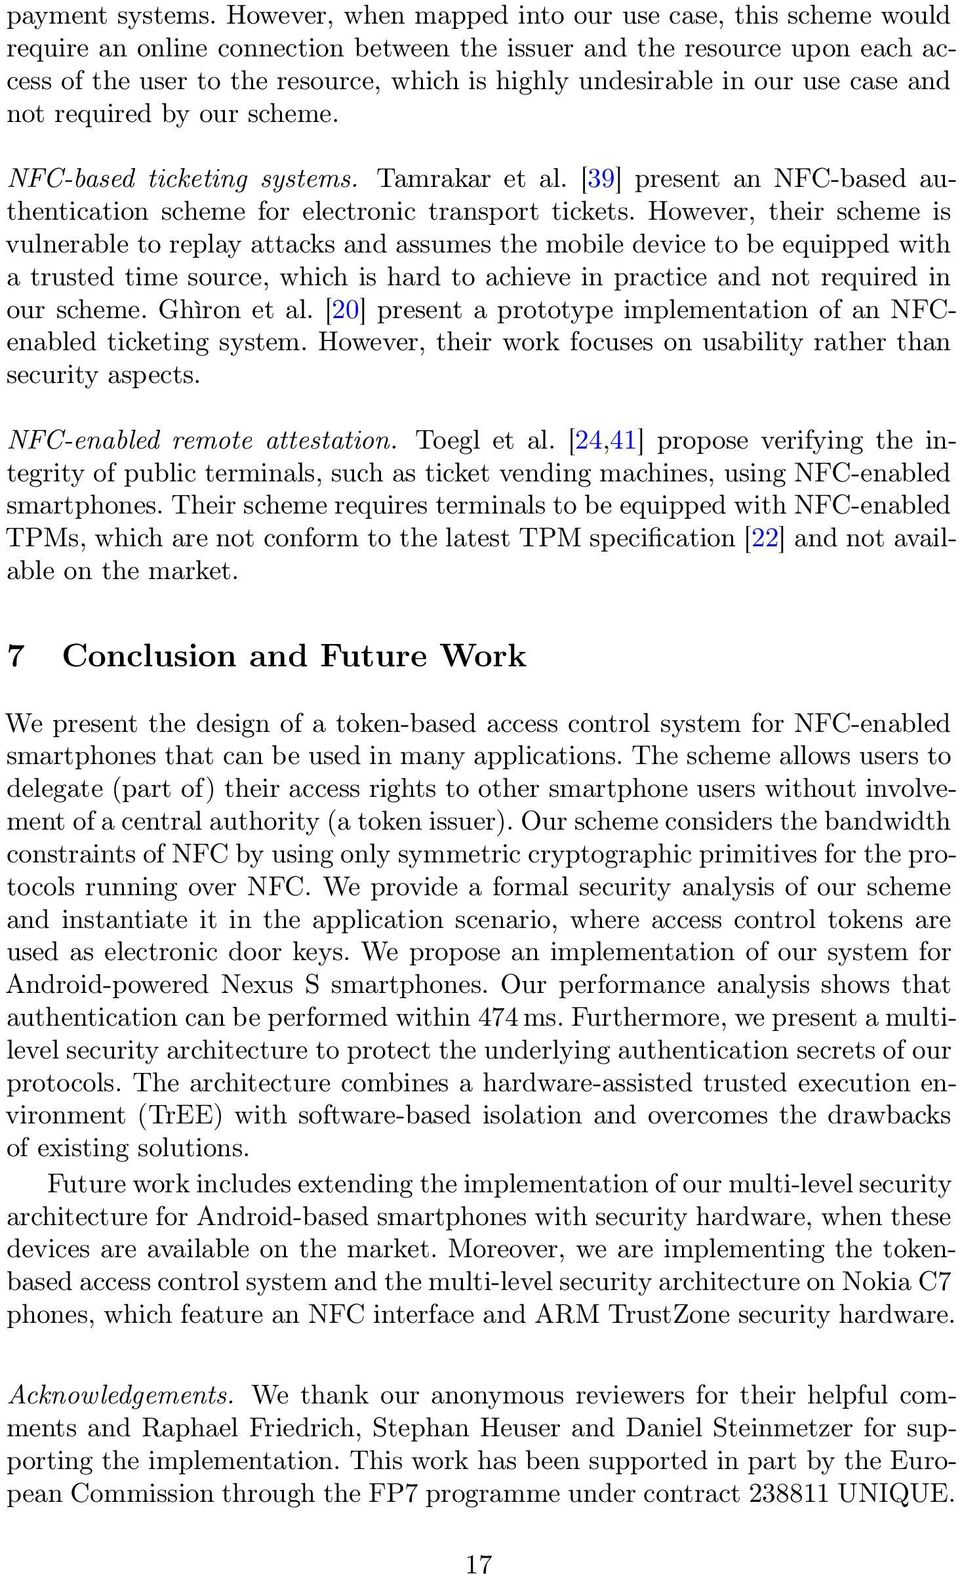 our use case and not required by our scheme. NFC-based ticketing systems. Tamrakar et al. [39] present an NFC-based authentication scheme for electronic transport tickets.